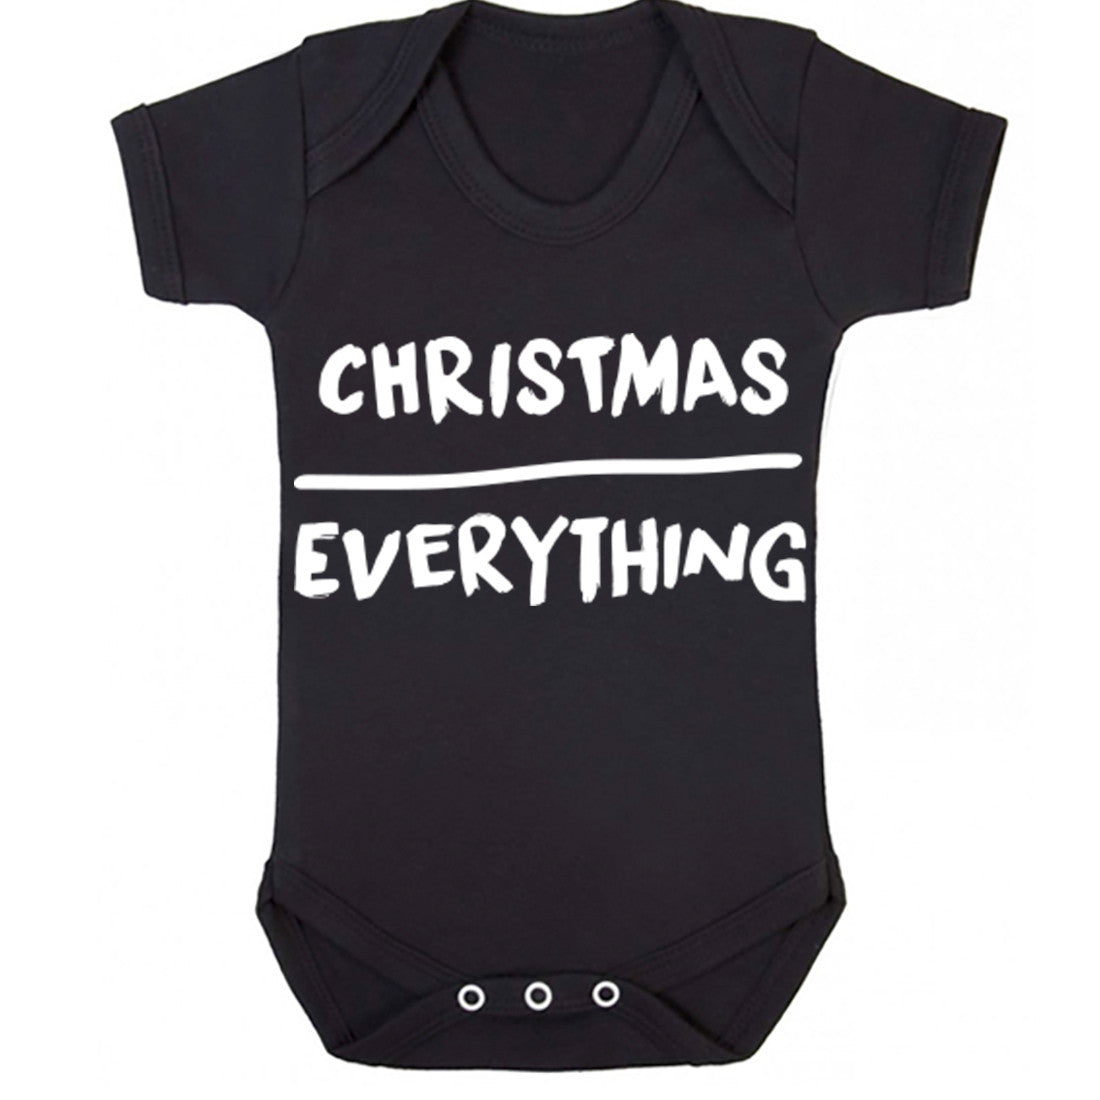 Christmas Over Everything Baby Vest K0127